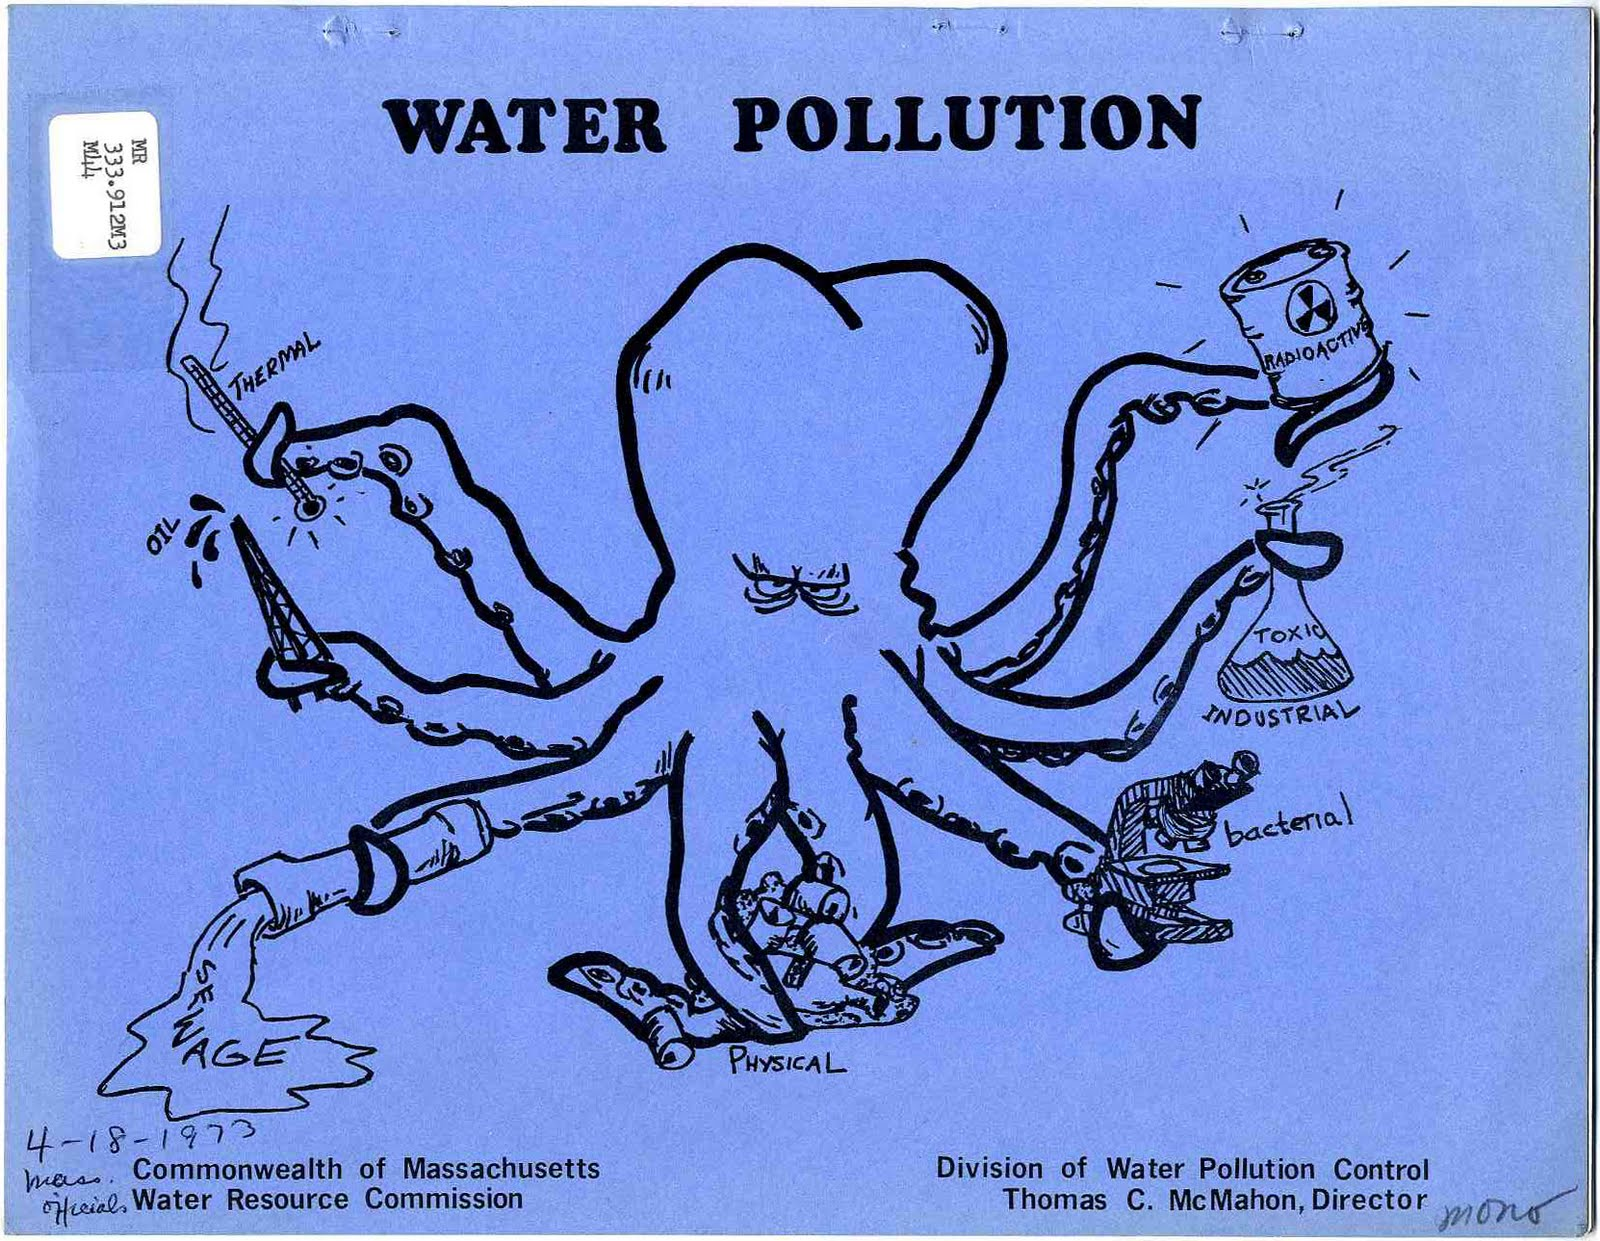 History of Chattanooga's Air Quality